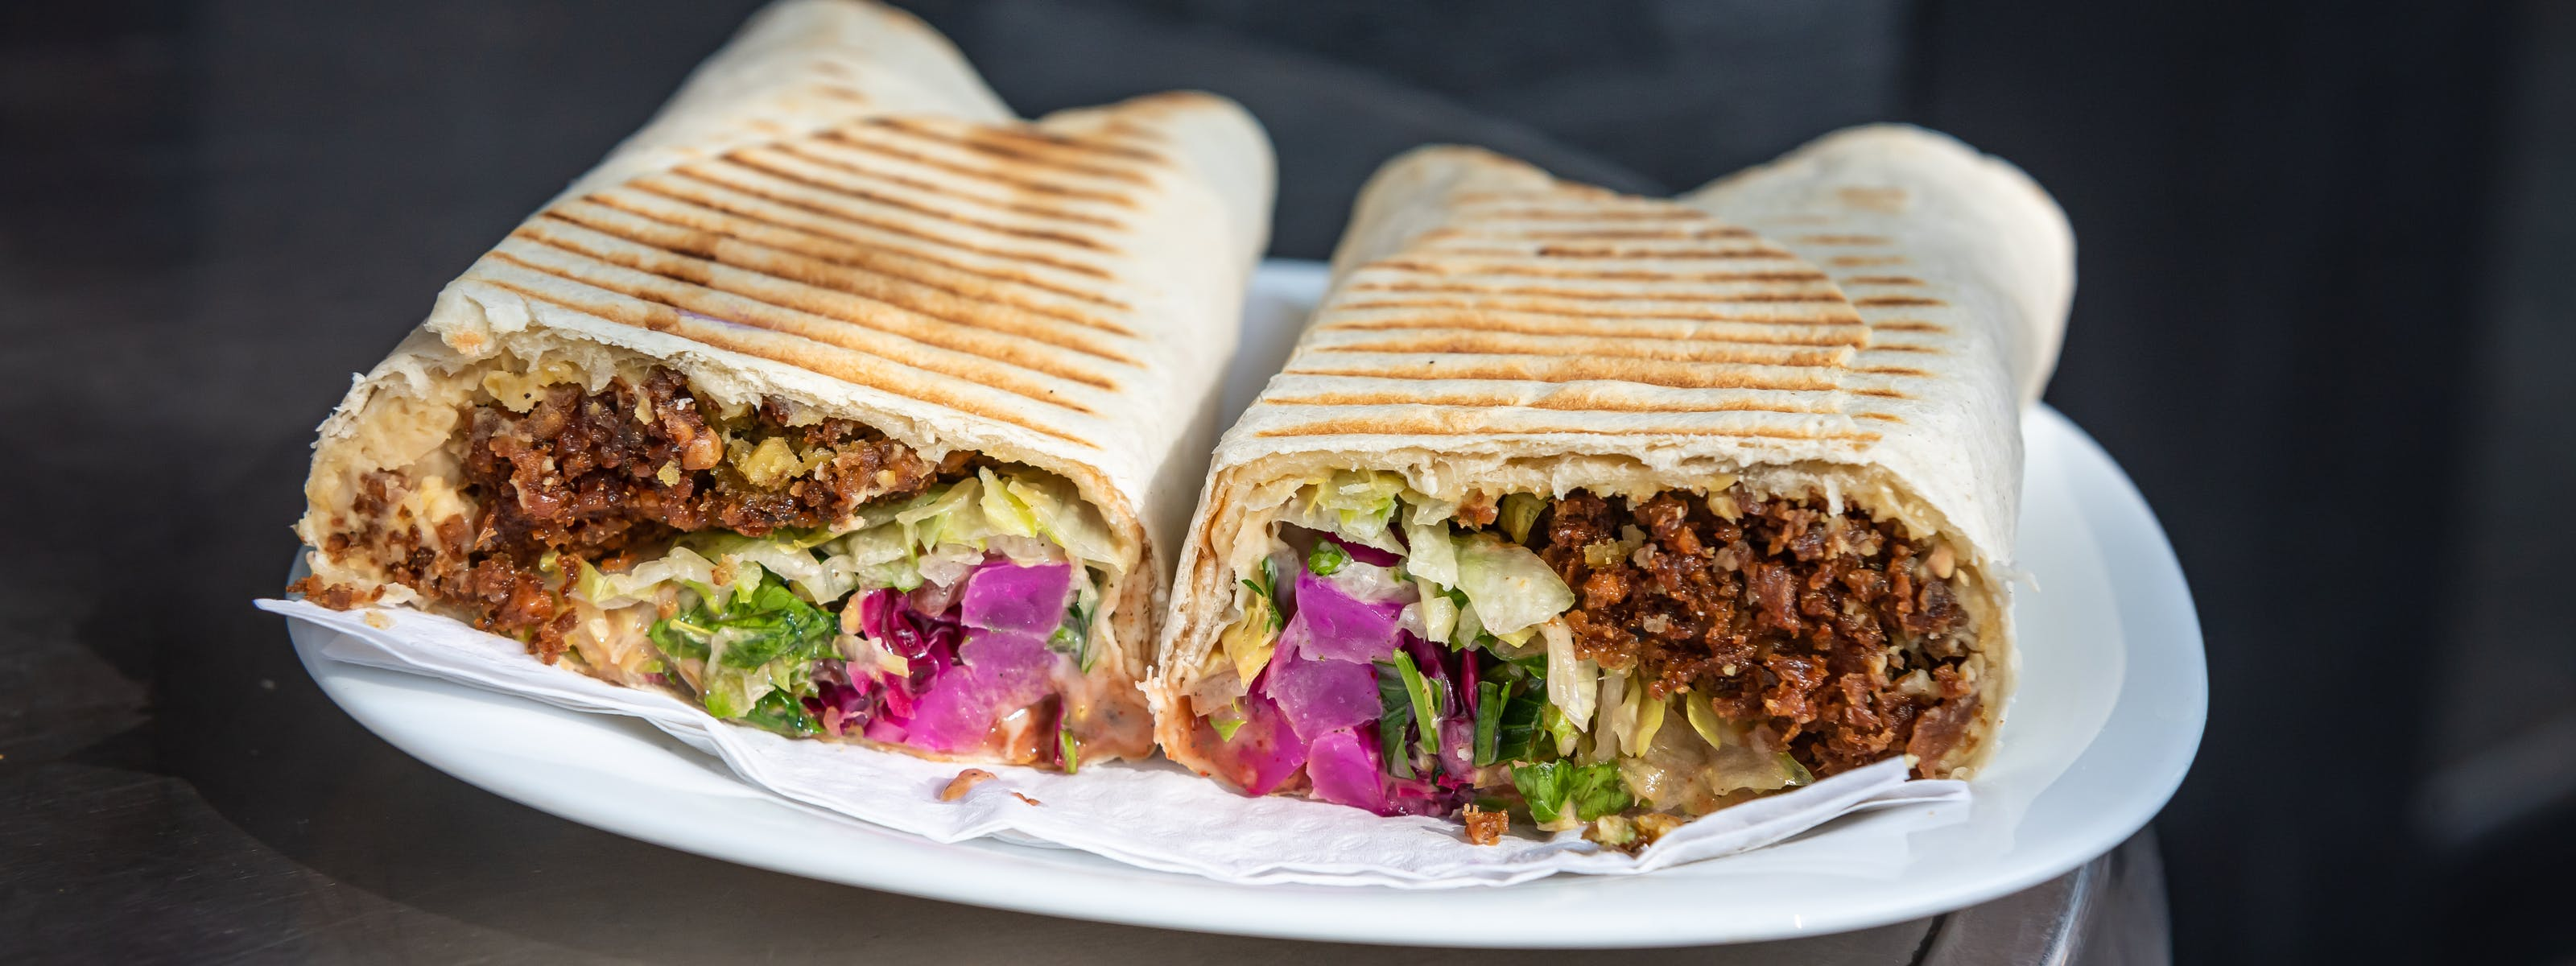 Where To Find London's Best Falafel - London - The Infatuation